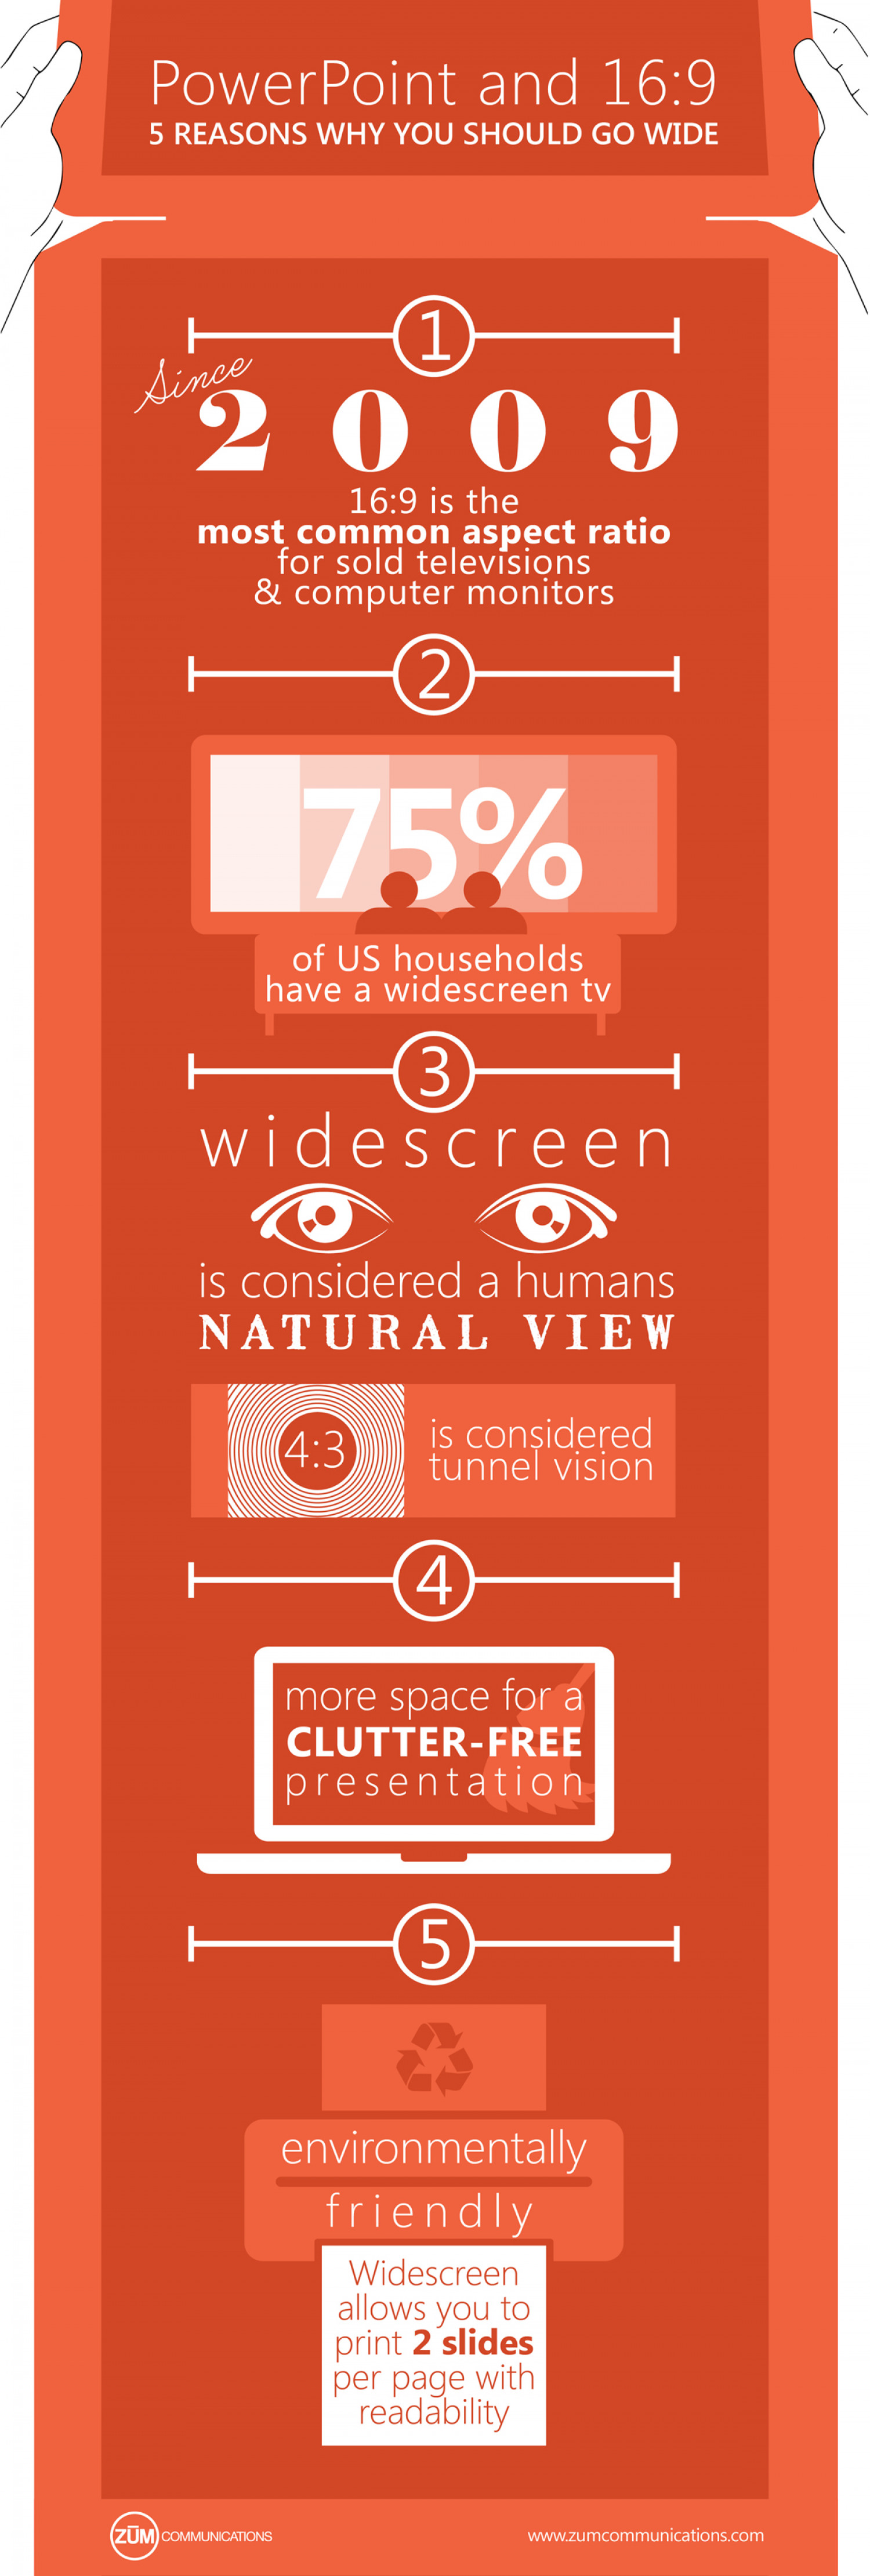 PowerPoint and 16:9 Infographic